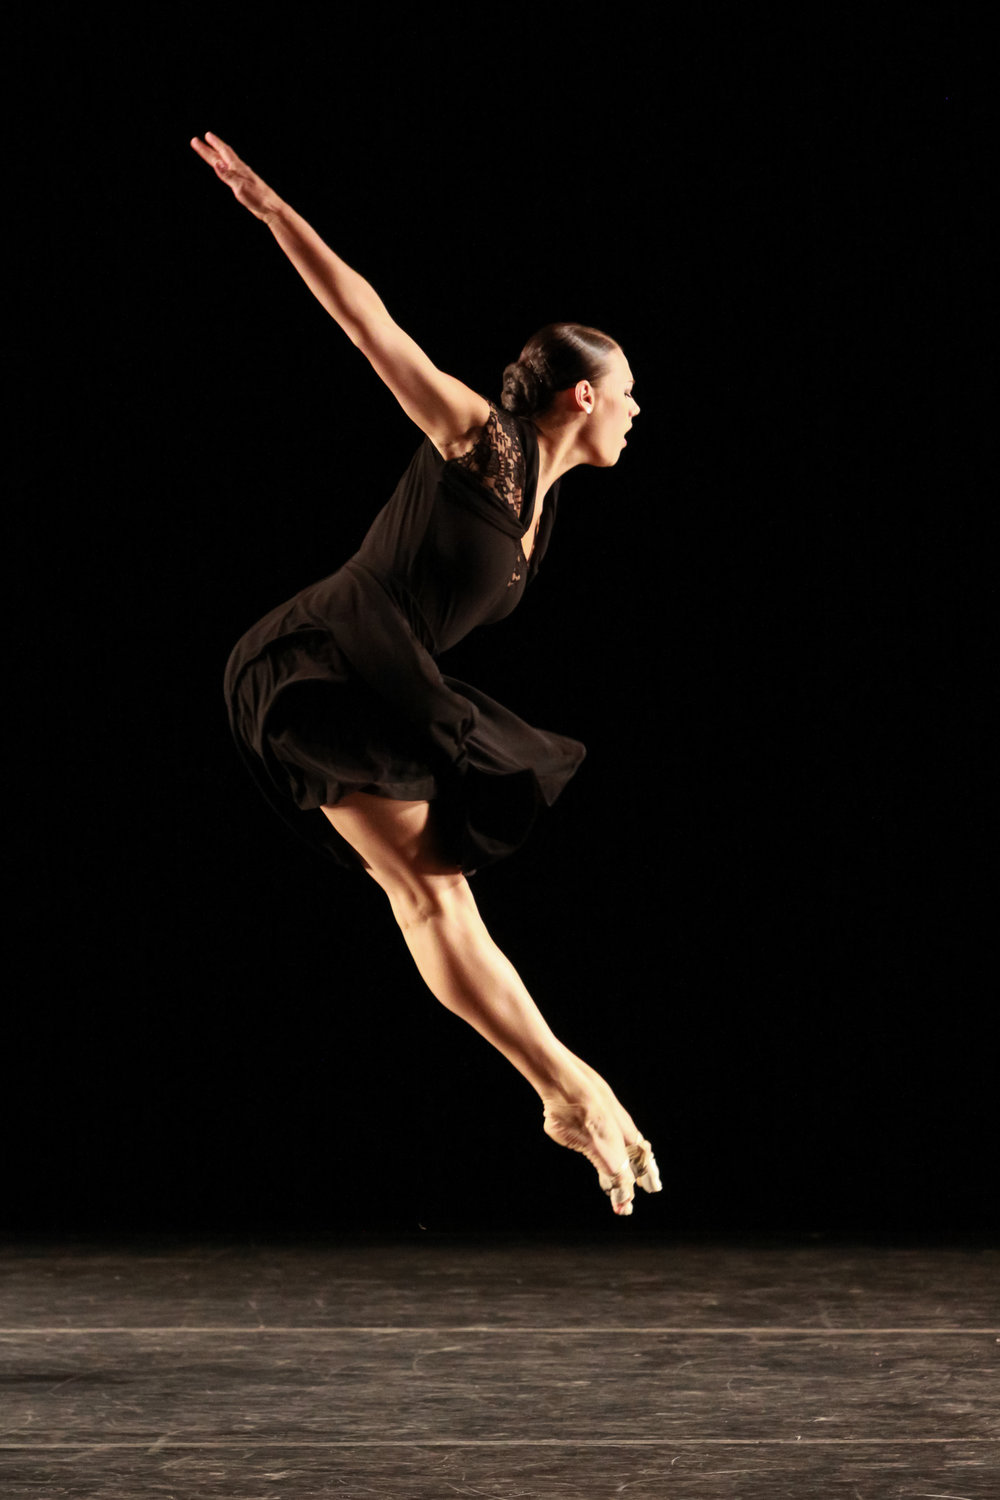 Pacific Northwest Ballet. Jacob's Pillow Dance Festival, 2009.